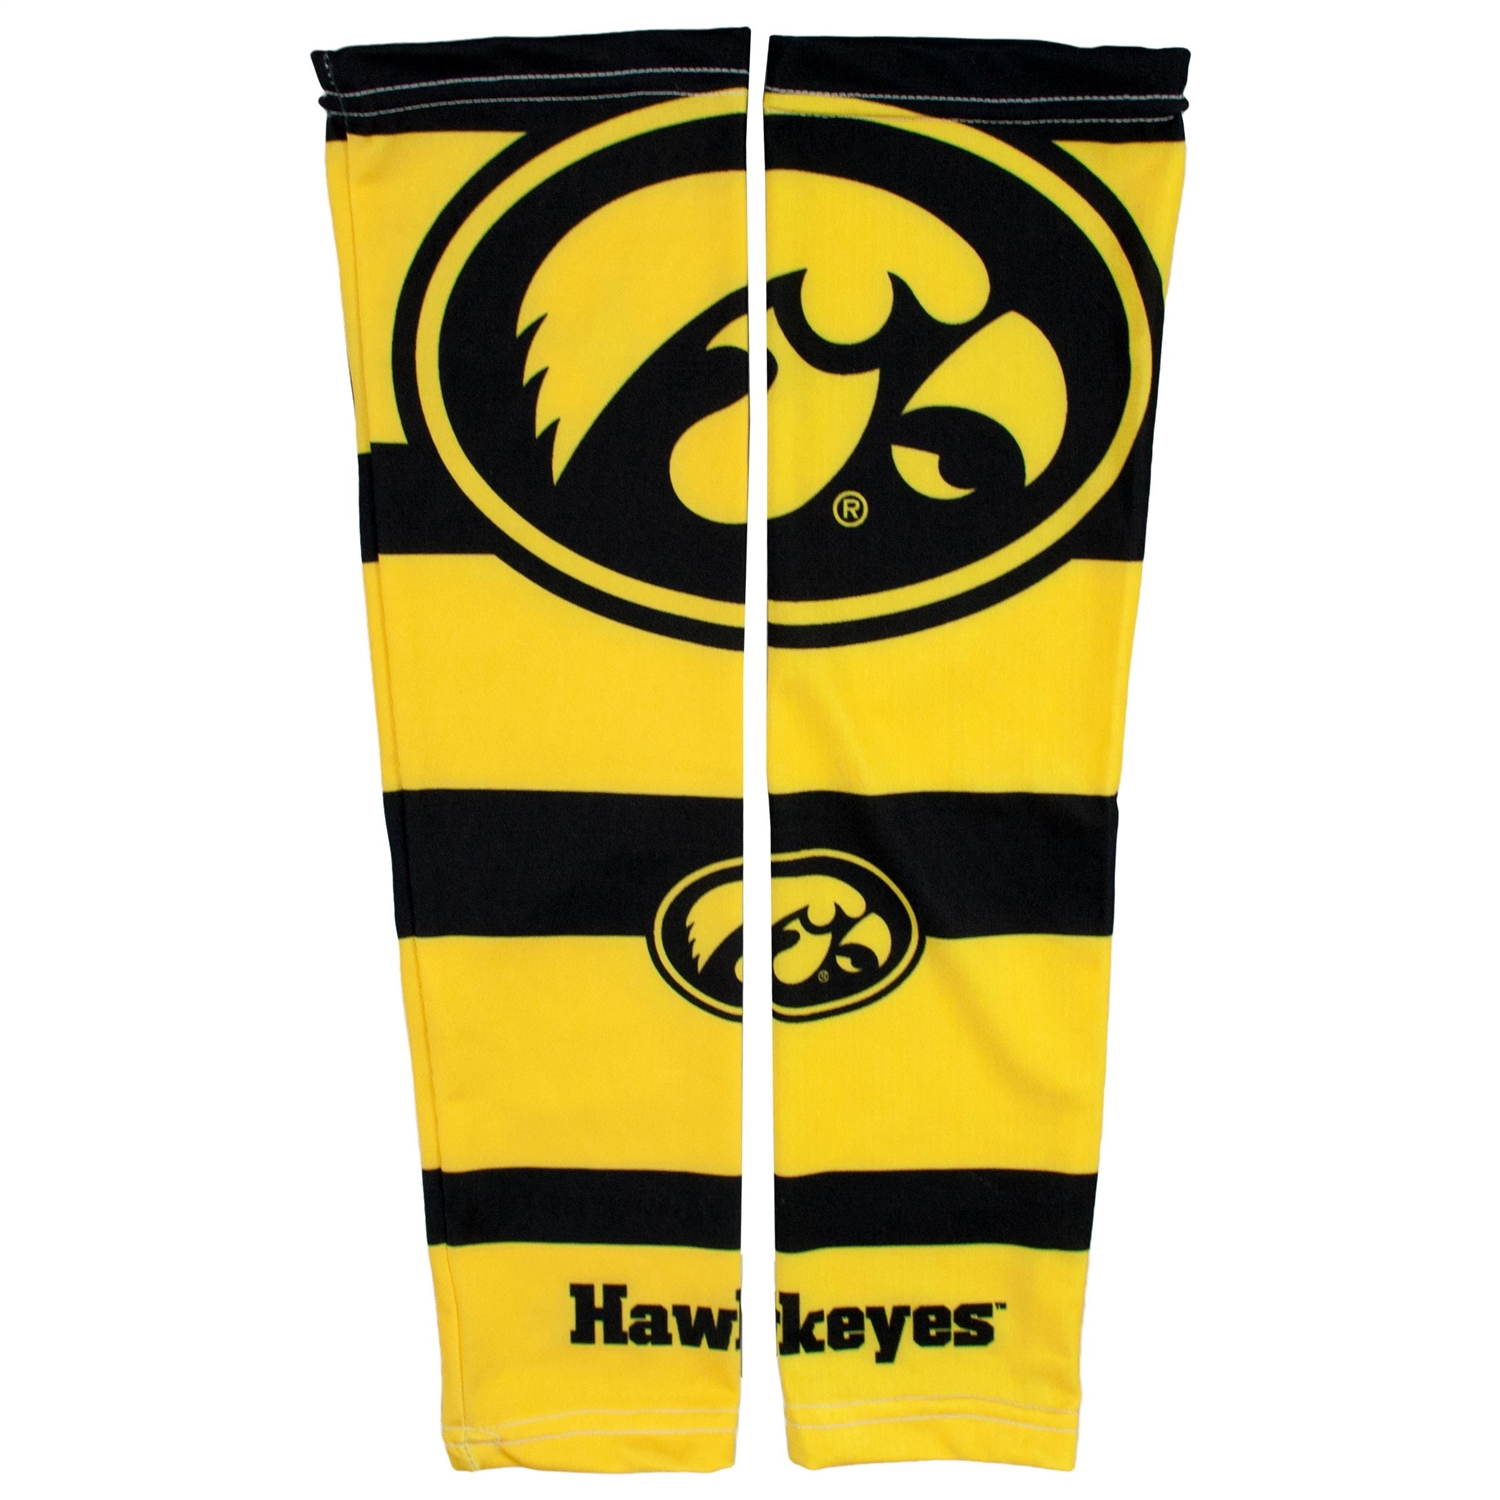 Ncaa College Iowa Iowa Hawkeyes Strong Arm Sleeves - 100612-uiwa - Iowa; U Of Strong Arm 100612-UIWA